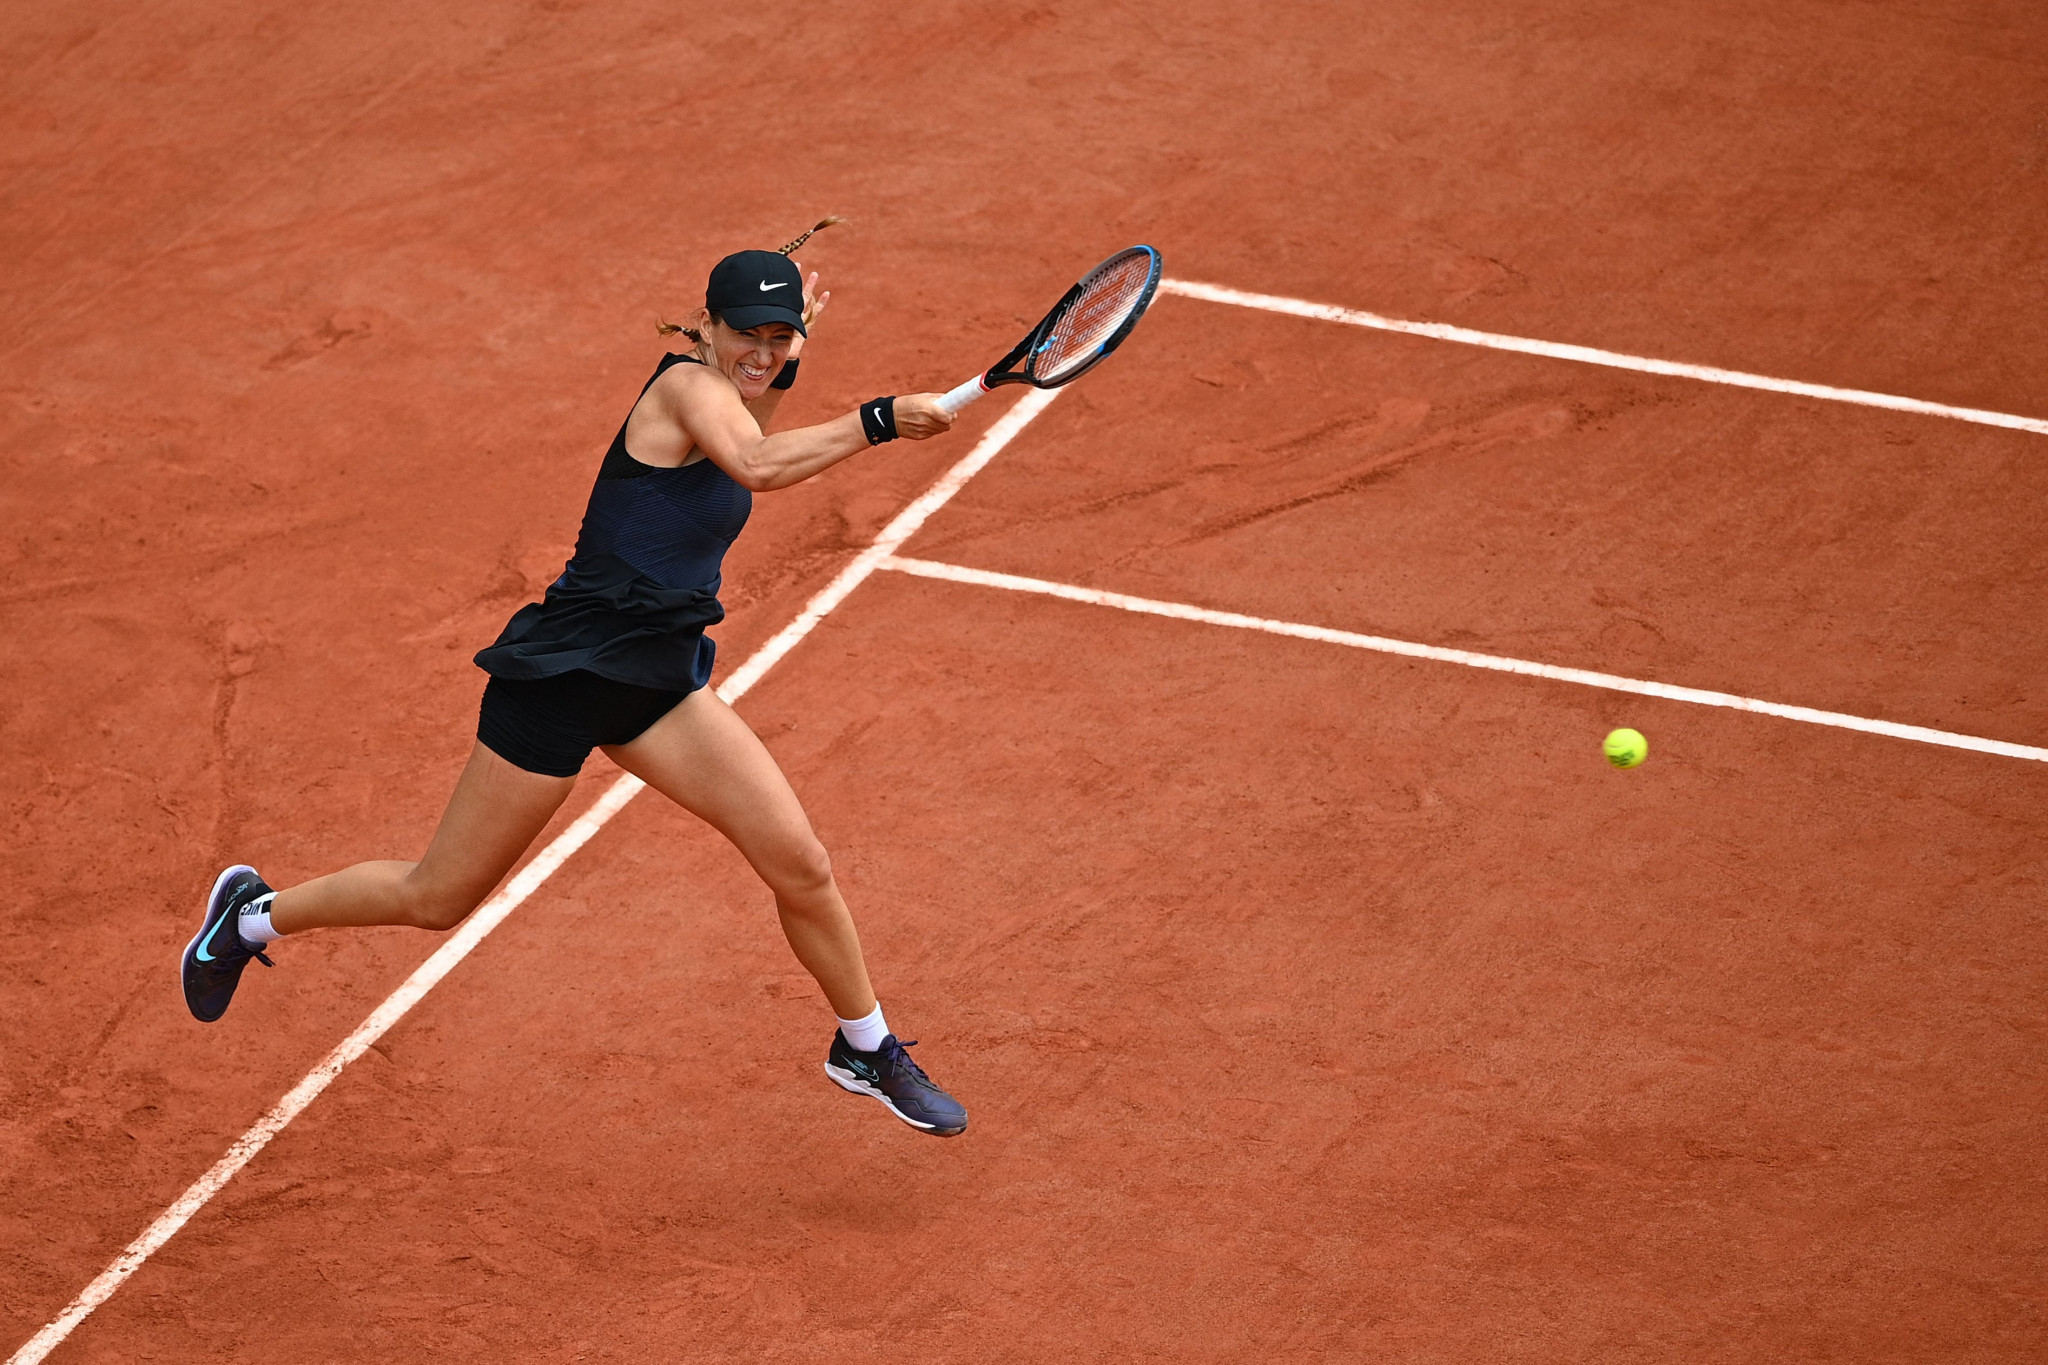 Victoria Azarenka beat Madison Keys in straight sets to advance to the second week of the French Open ©Getty Images